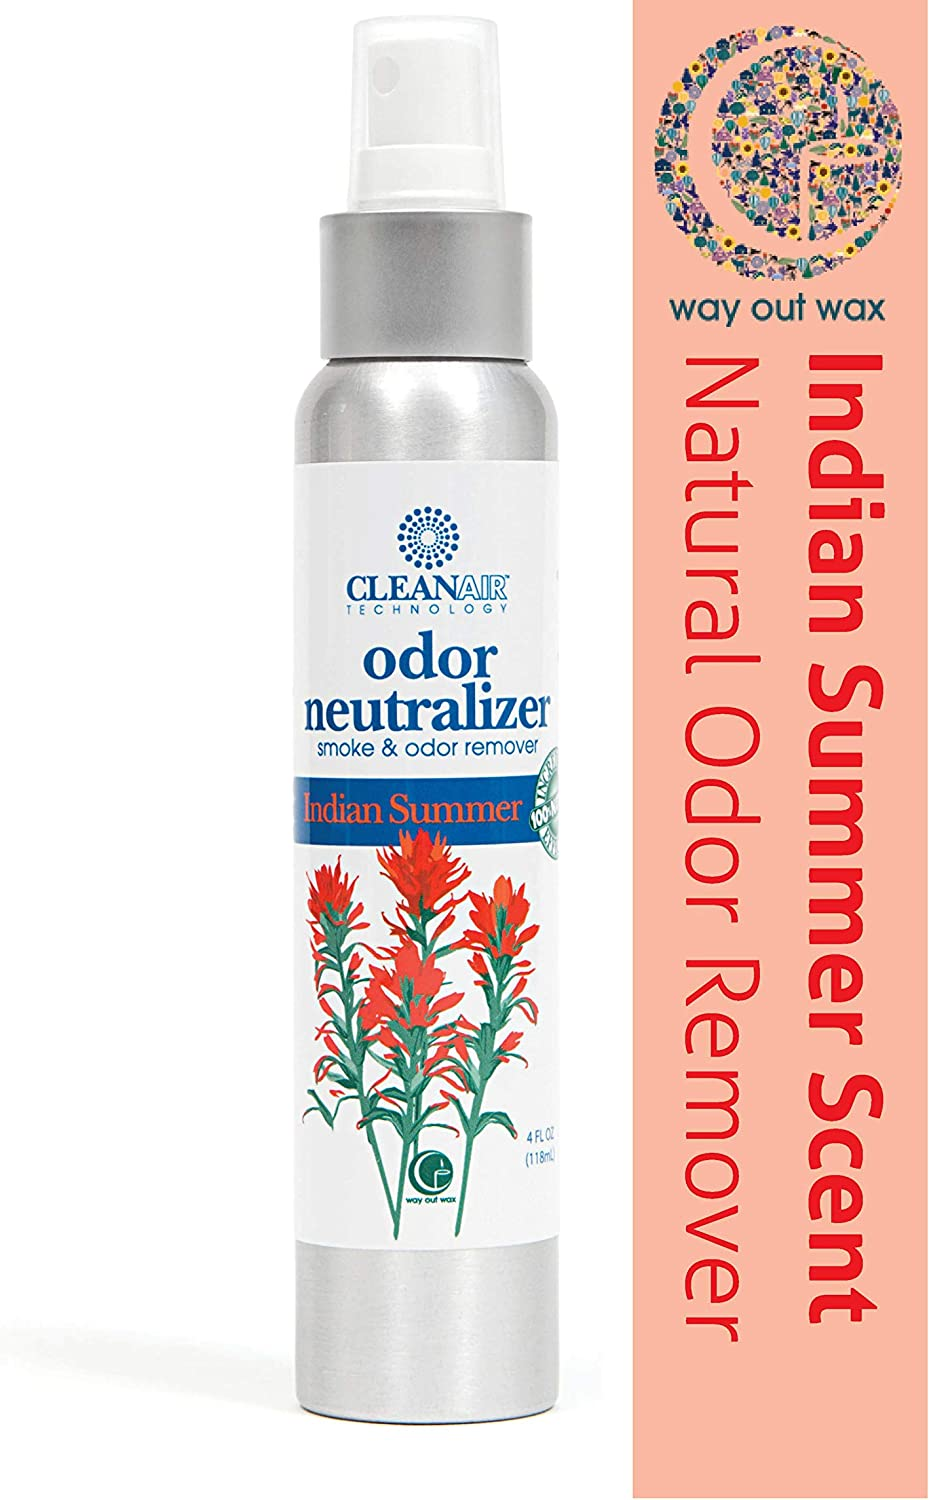 Way Out Wax Odor Neutralizing Spray, Clean Air Indian Summer Scent Odor Remover (4 oz Spray Bottle); All-Natural Air Freshener and Deodorizer